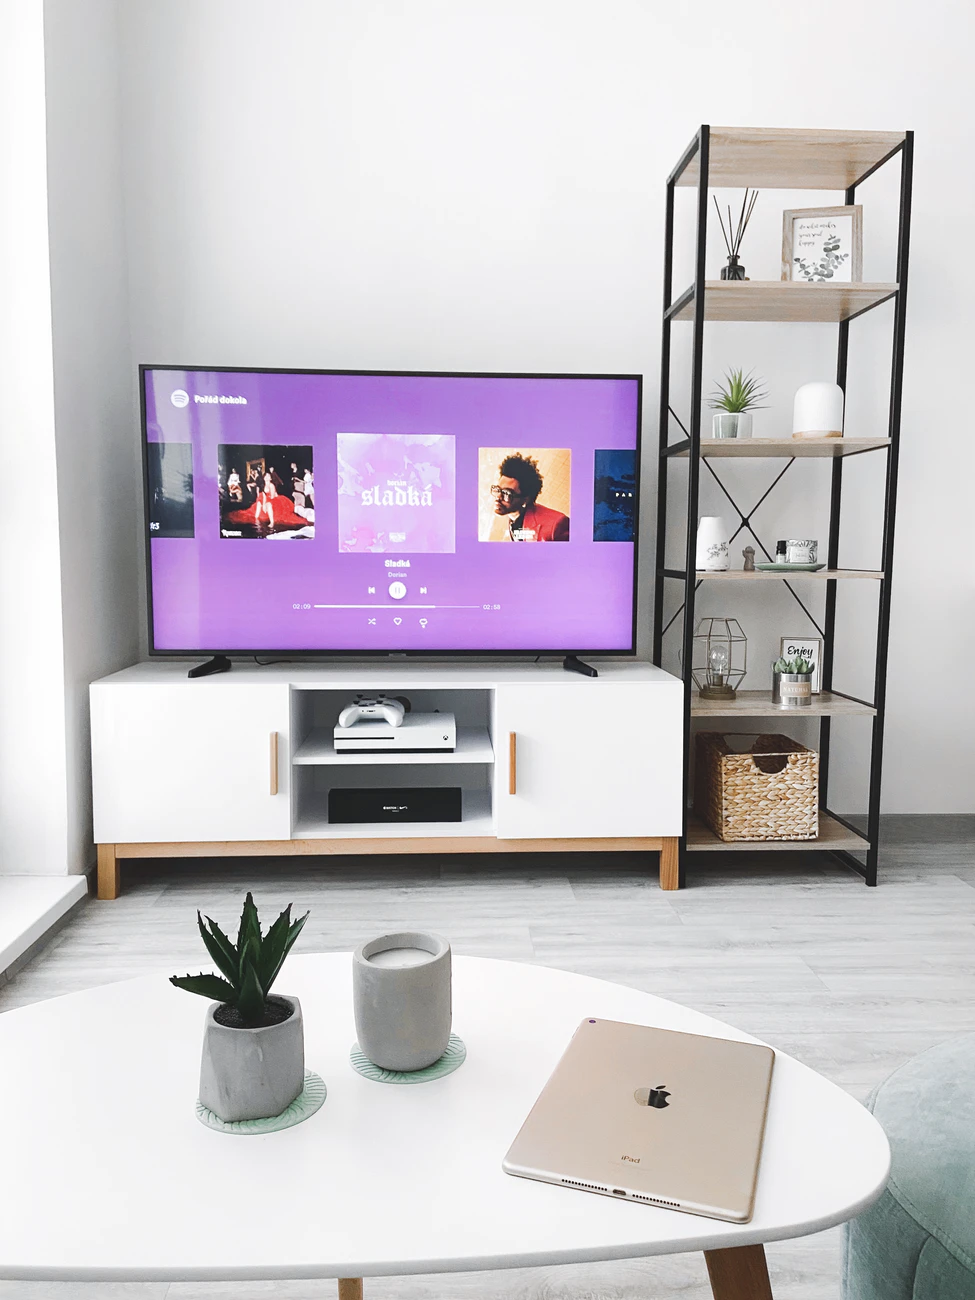 TV on white entertainment stand turned on to the Spotify music app.